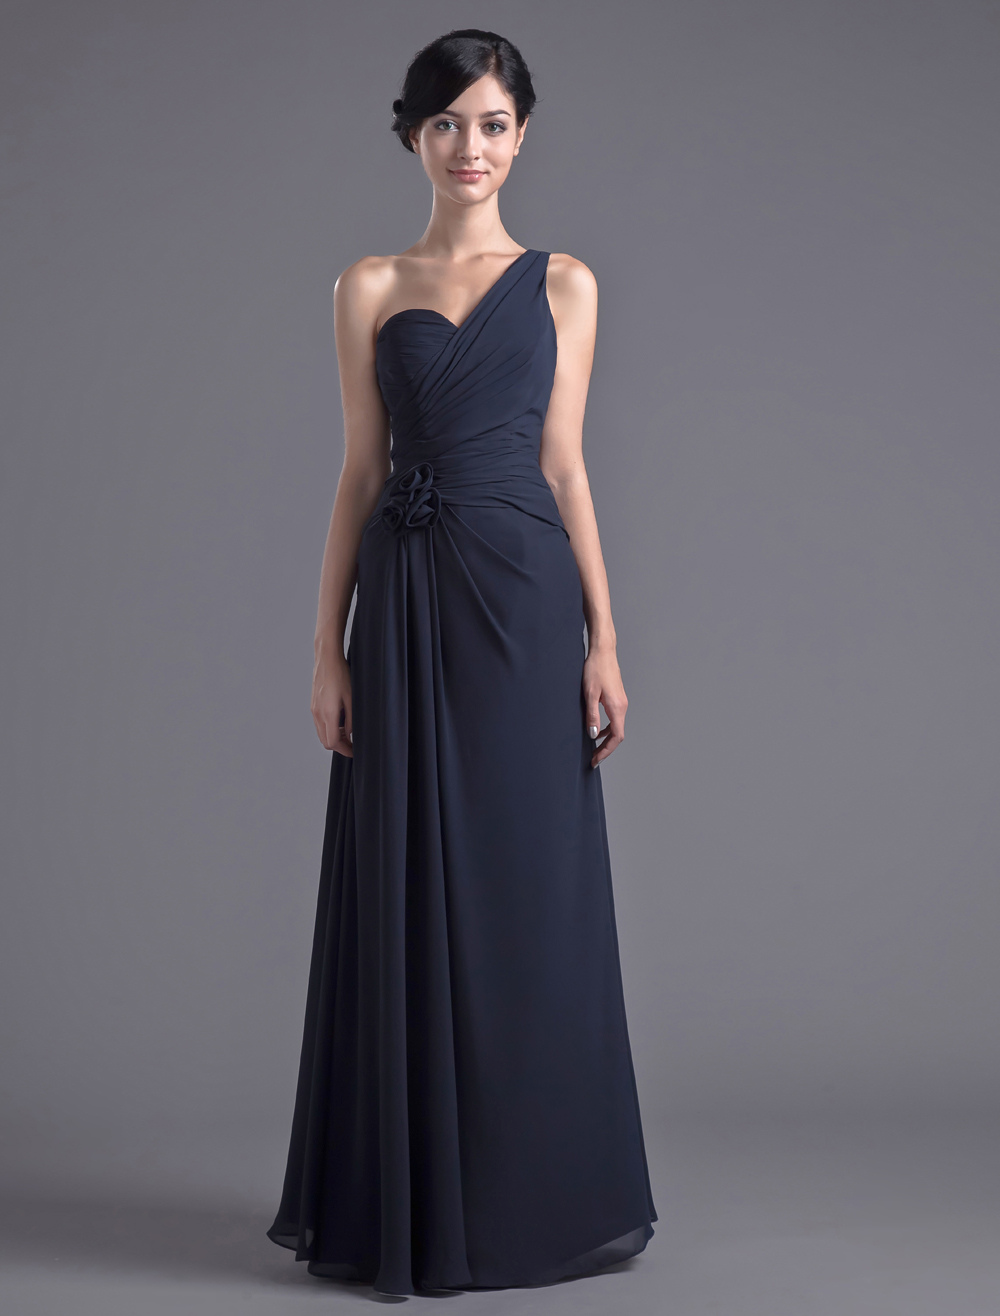 Elegant Dark Navy Chiffon Floral One-Shoulder Floor-Length Bridesmaid Dress For Wedding